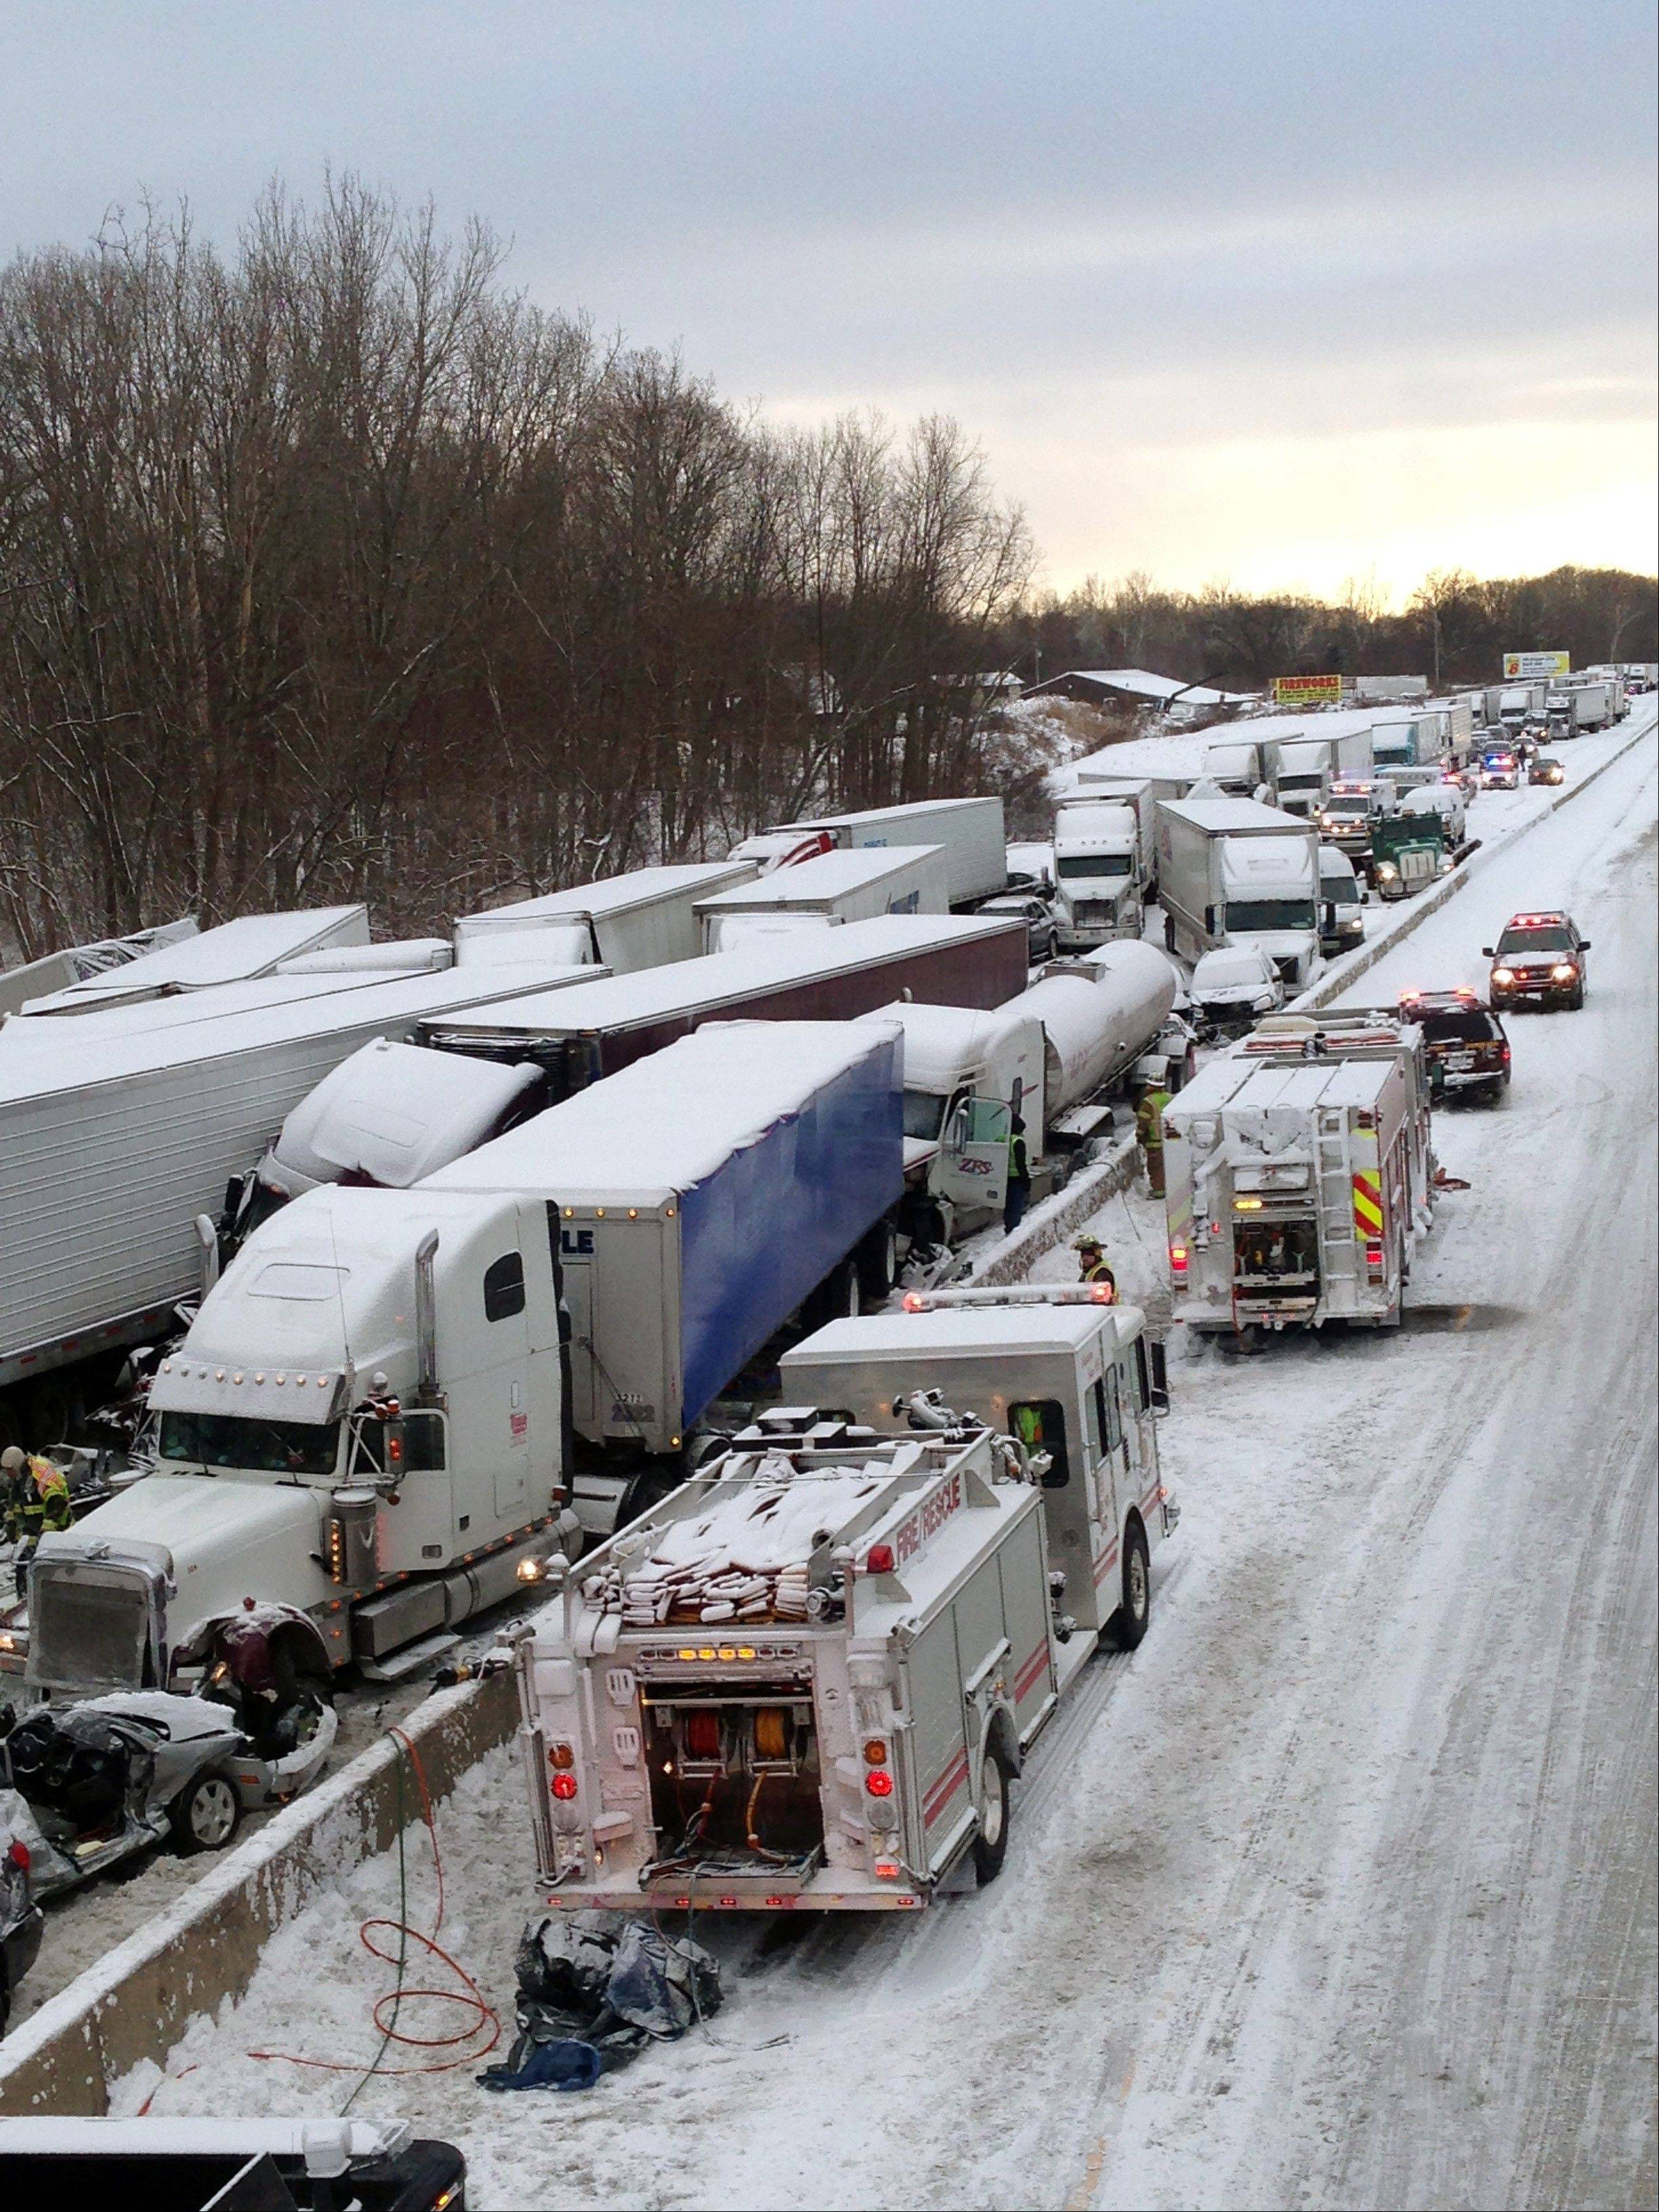 Emergency crews work at the scene of a massive pileup involving more than 40 vehicles, many of them semitrailer trucks, along Interstate 94 Thursday afternoon near Michigan City, Ind.